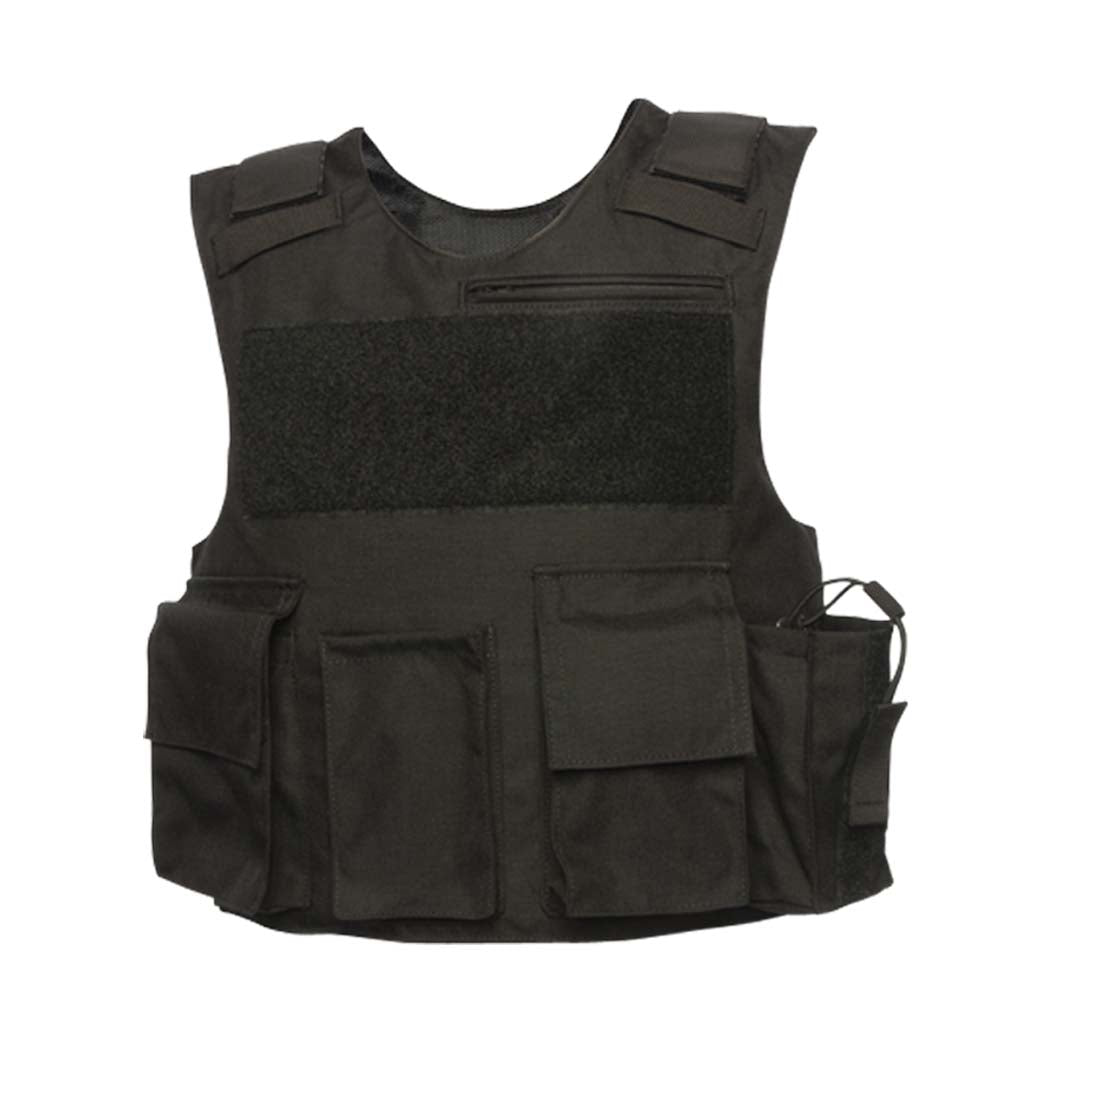 GH Armor Tactical Outer Carrier [TOC]